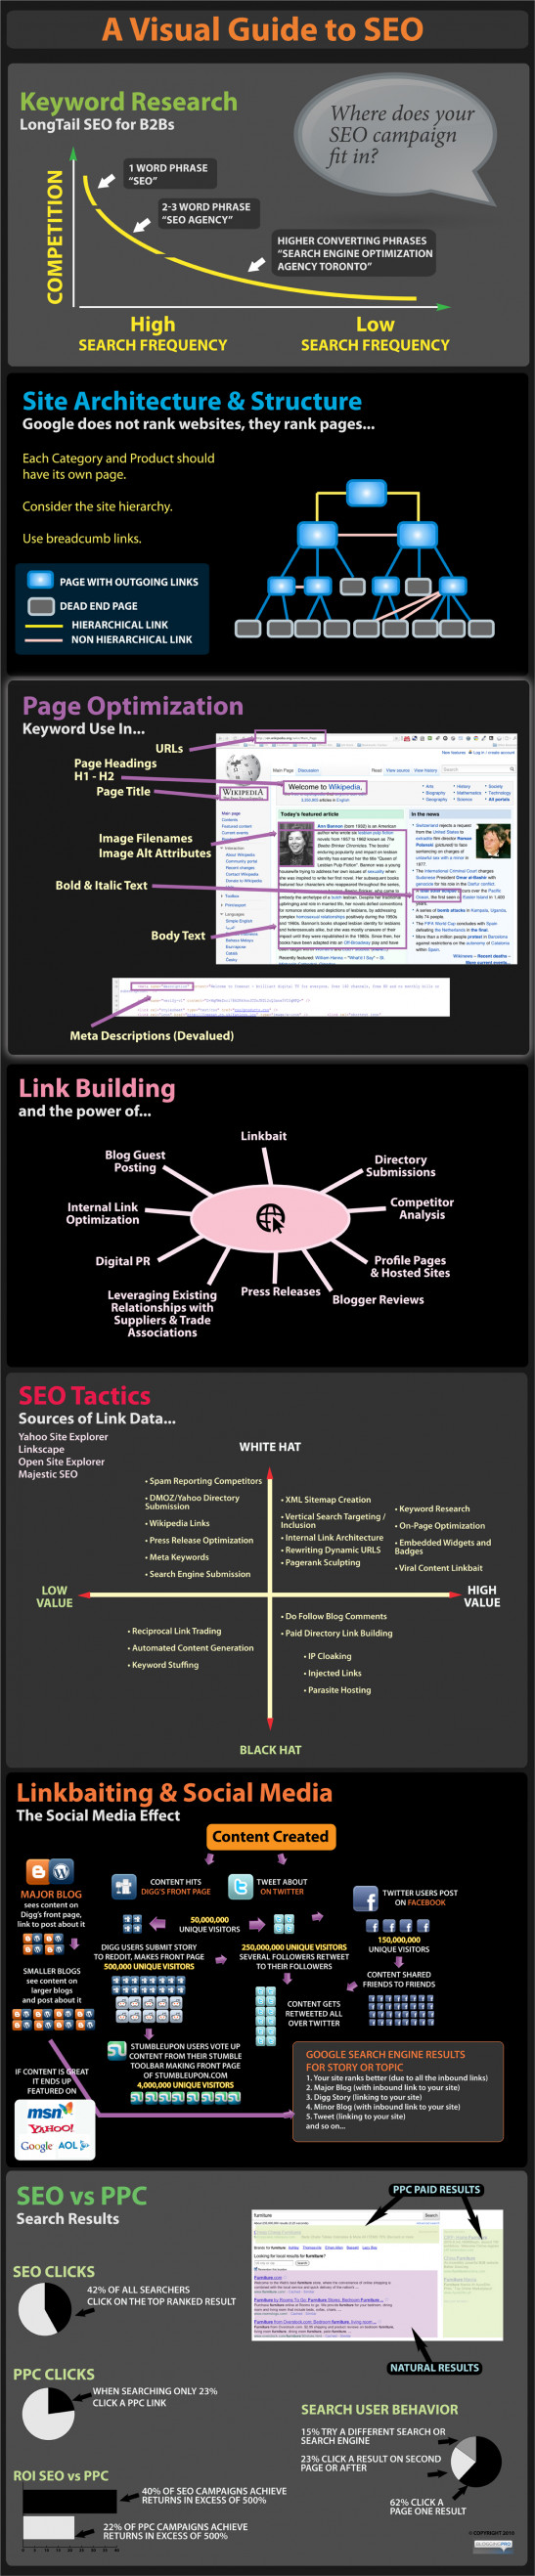 A Visual Guide to Search Engine Optimization, courtesy of Visual.ly